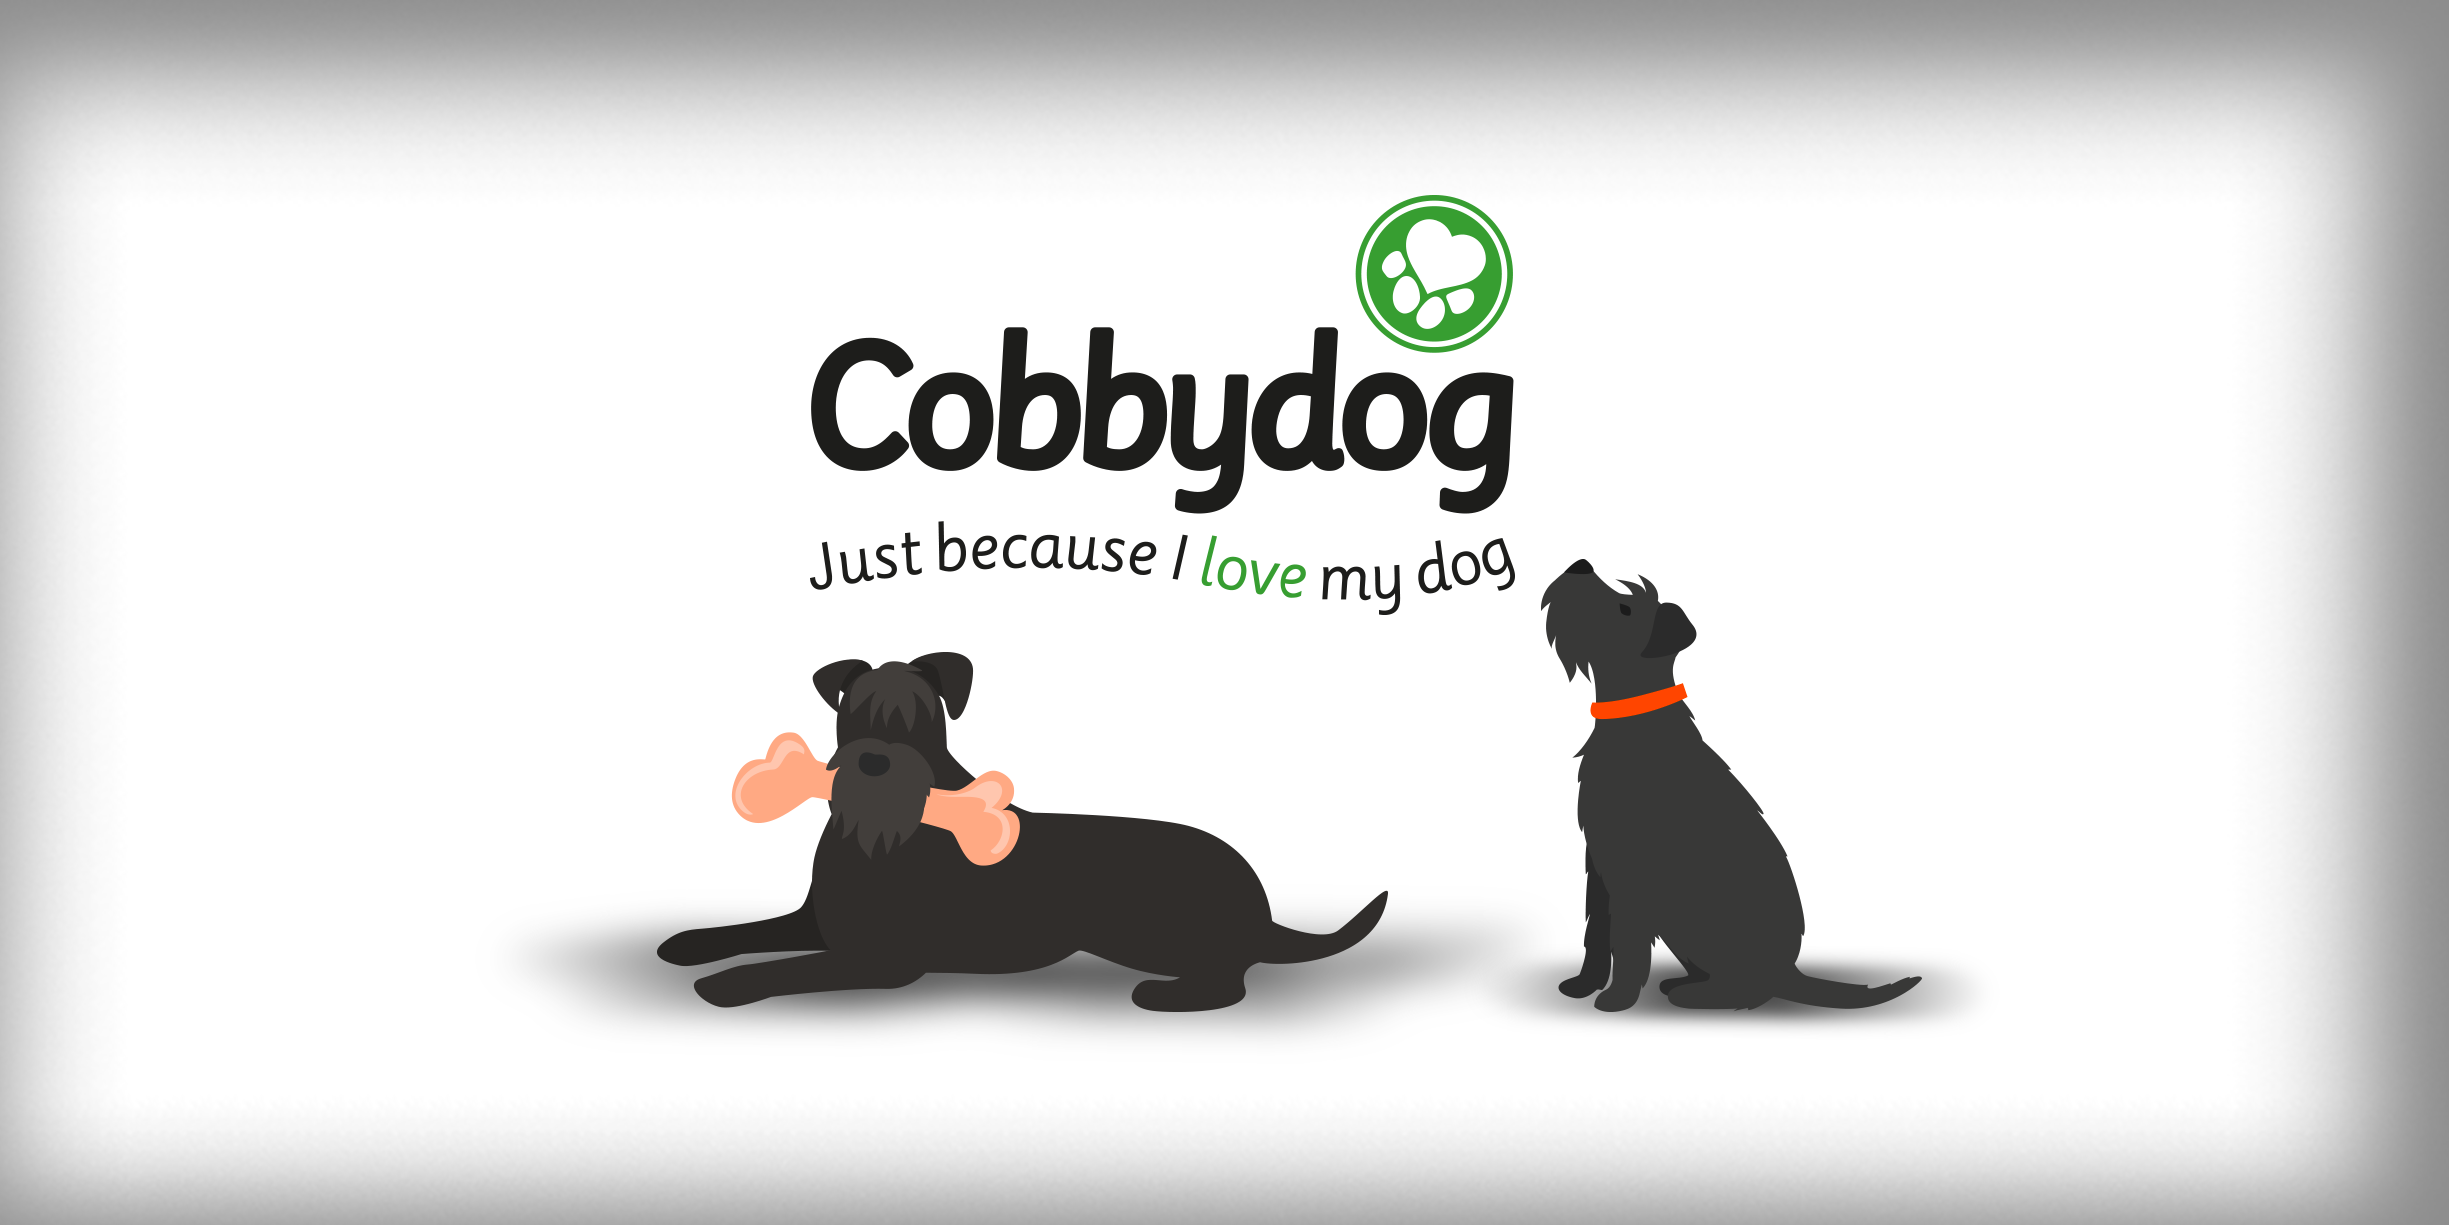 cobbydog just because I love my dog